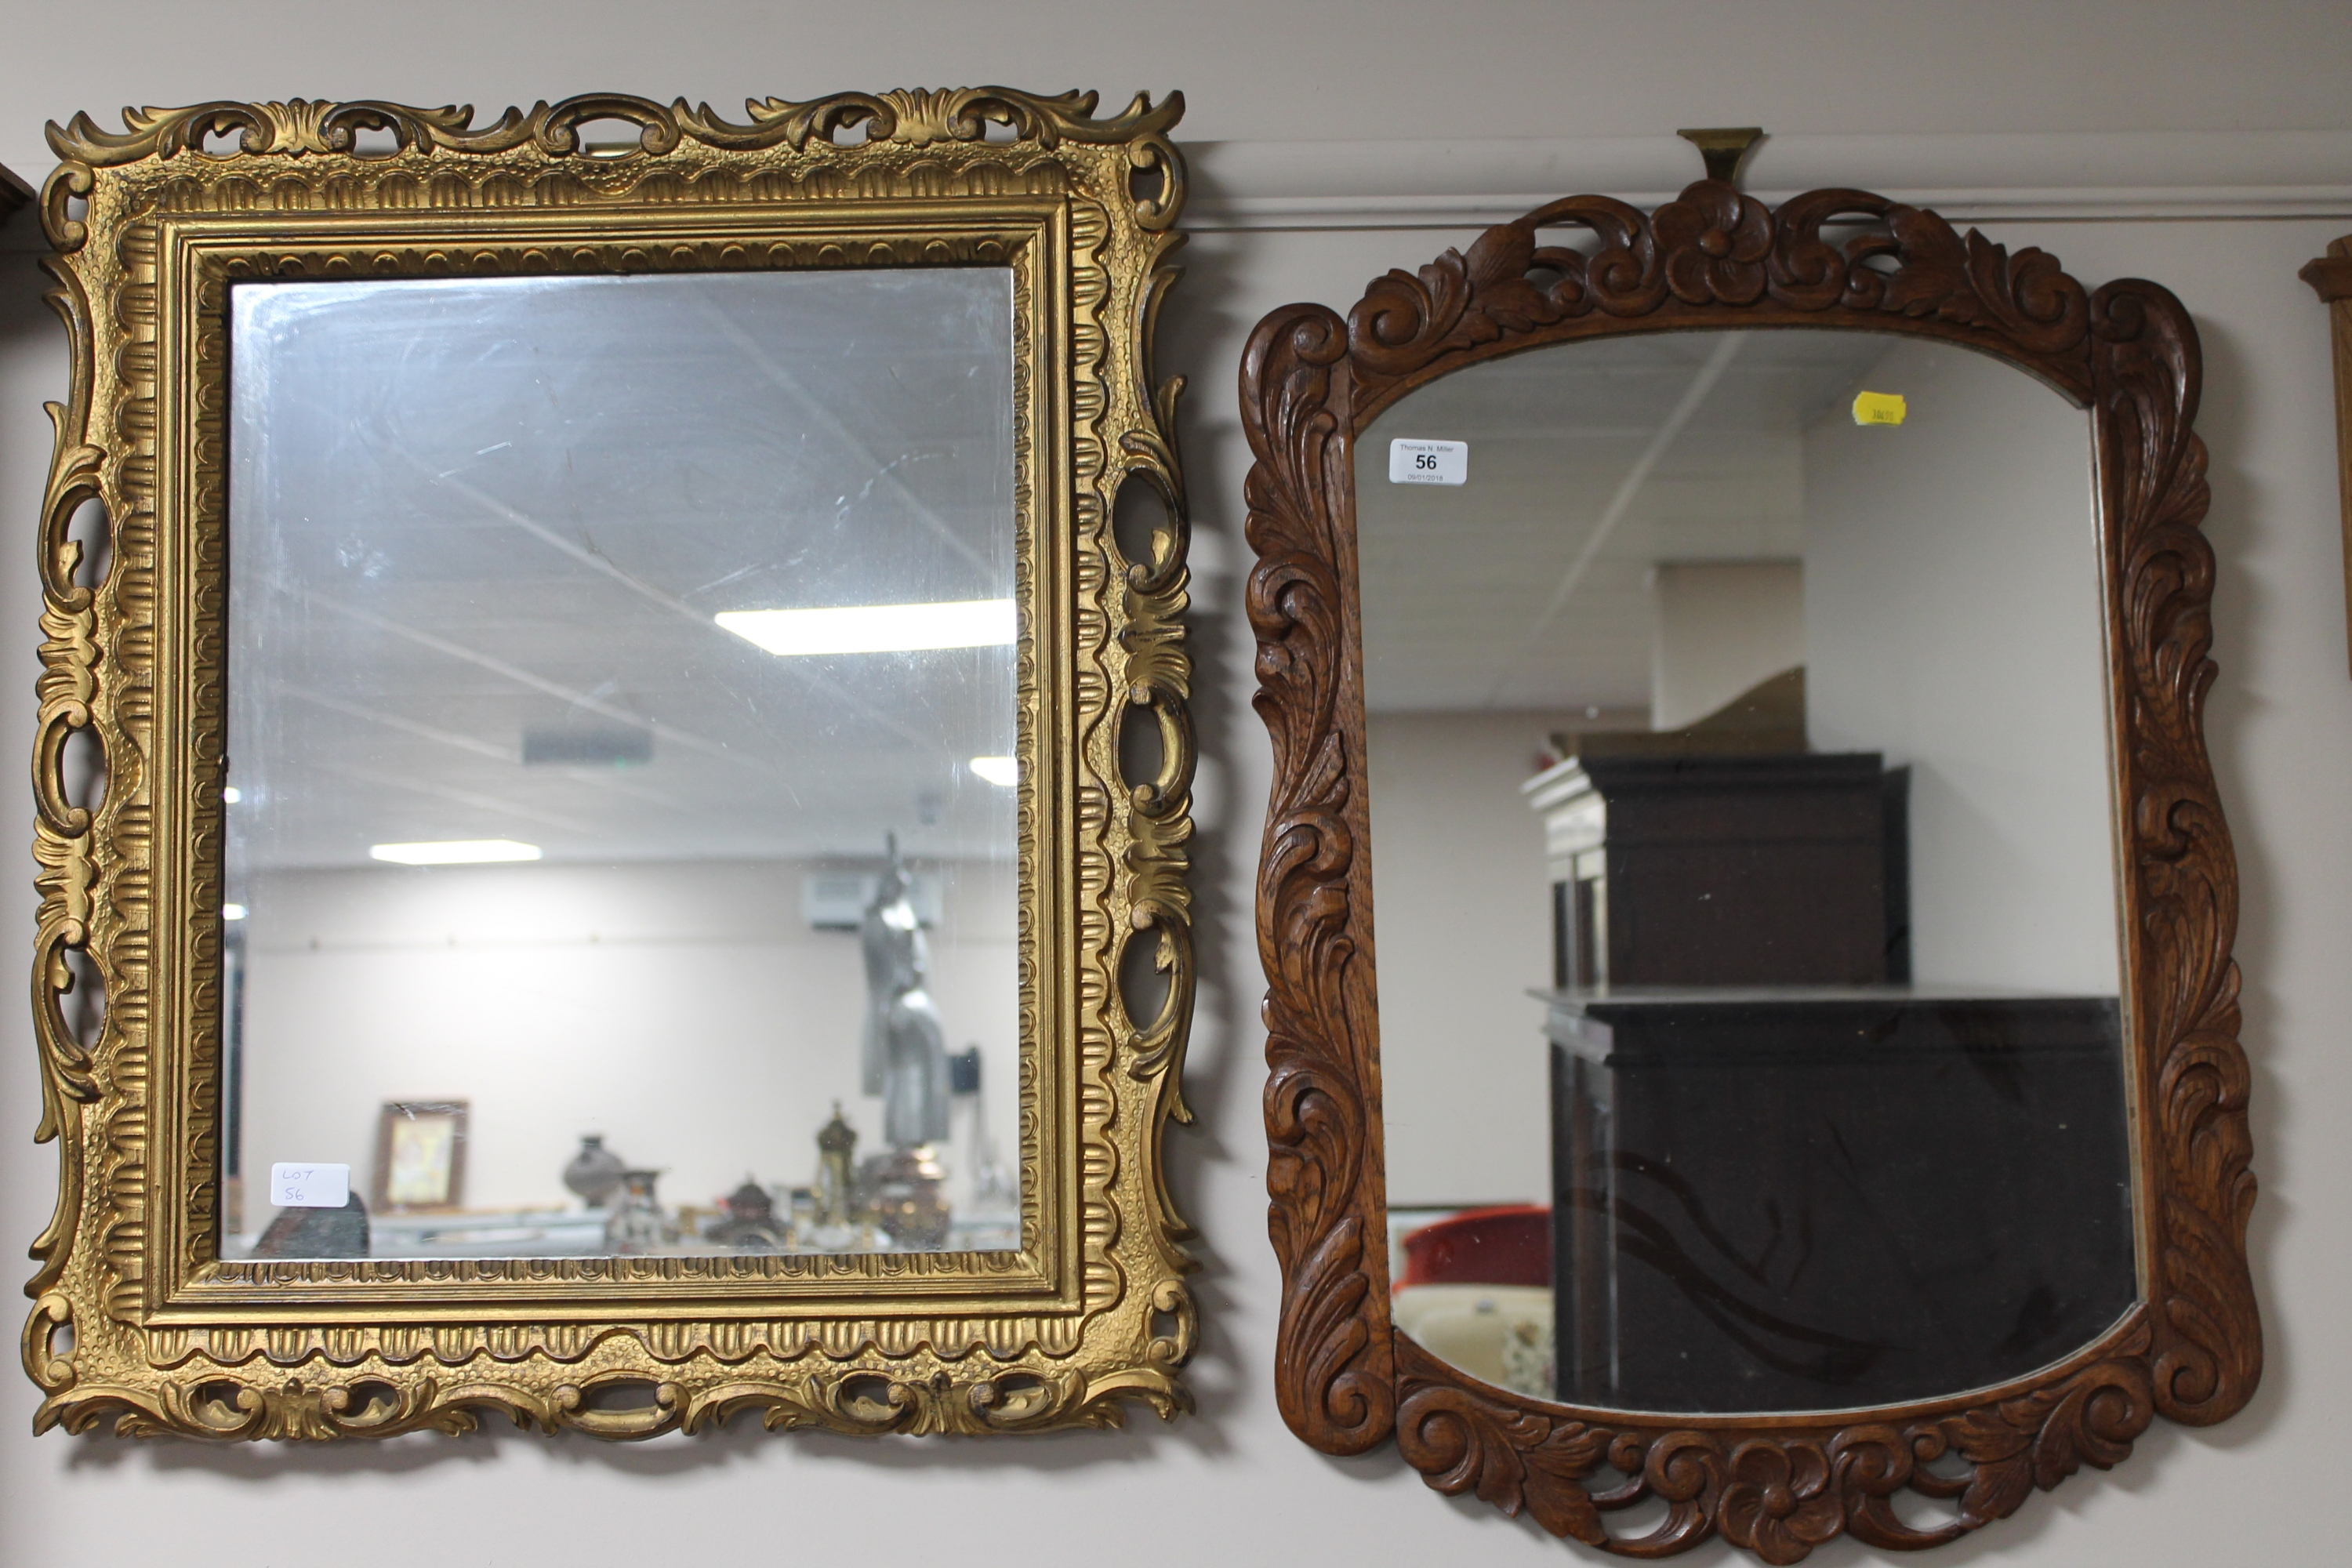 Lot 56 - A carved oak framed wall mirror together with a decorative gilt framed mirror